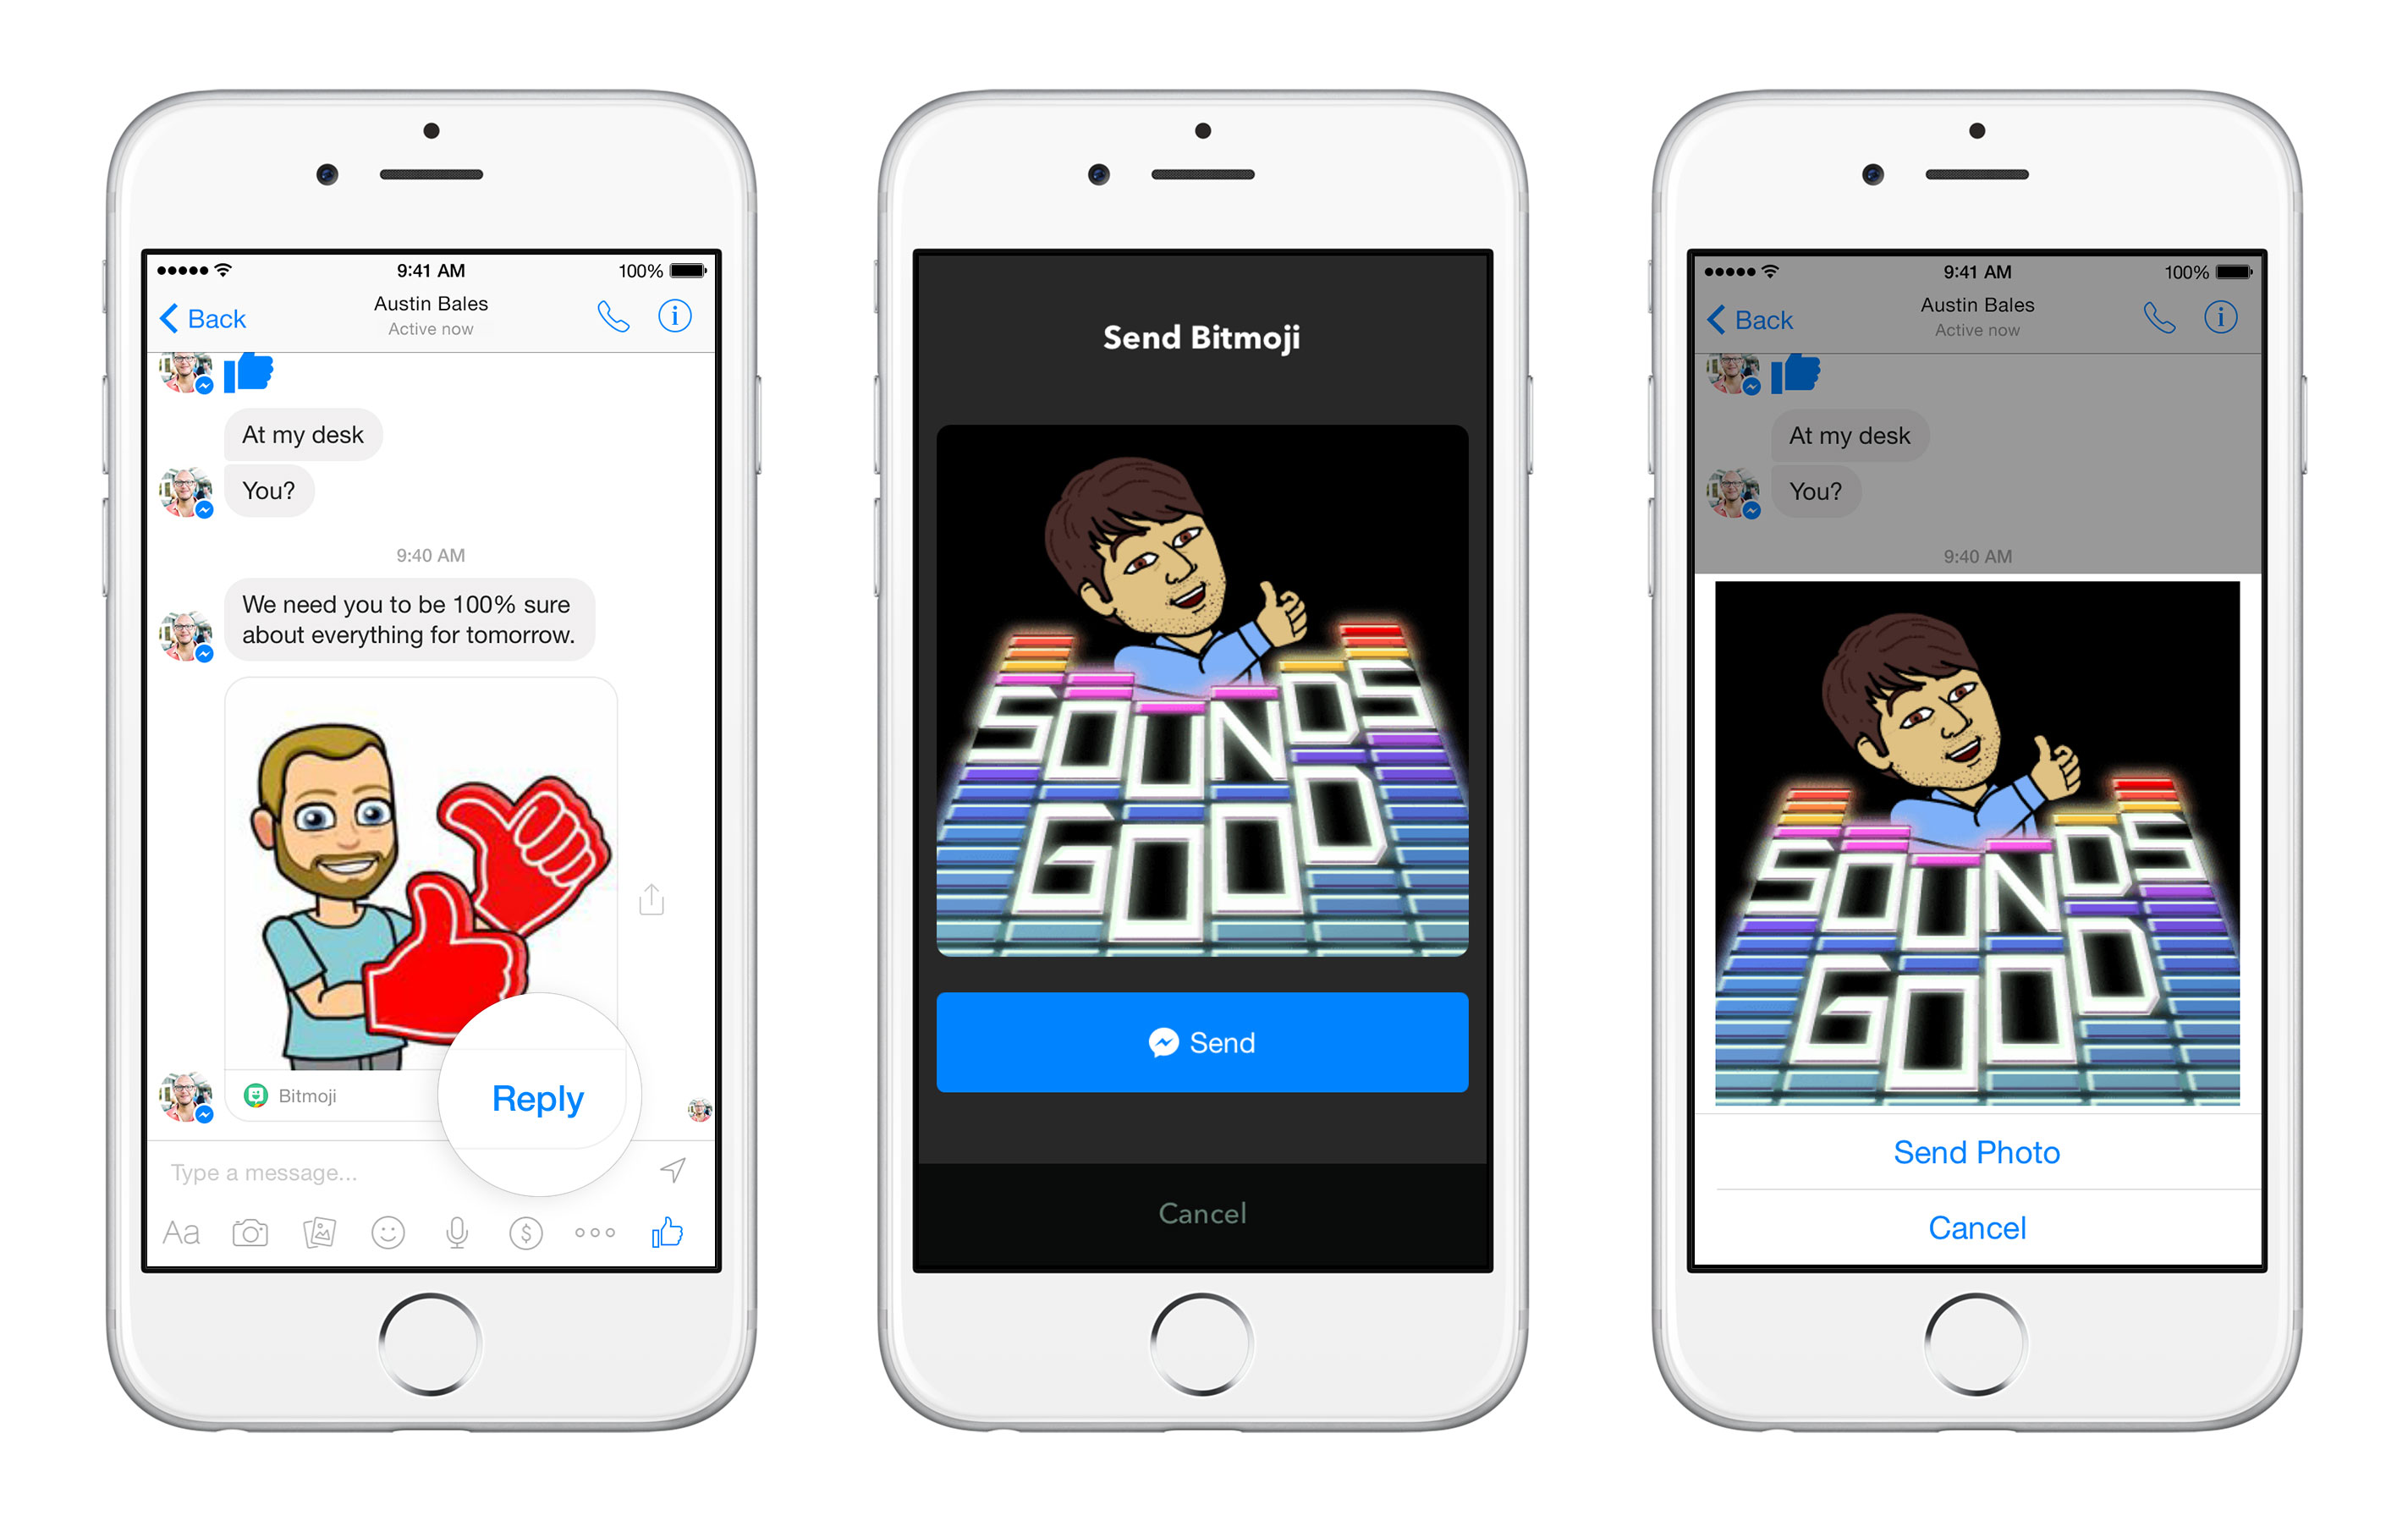 Facebook Messenger is now a platform featuring other third-party apps